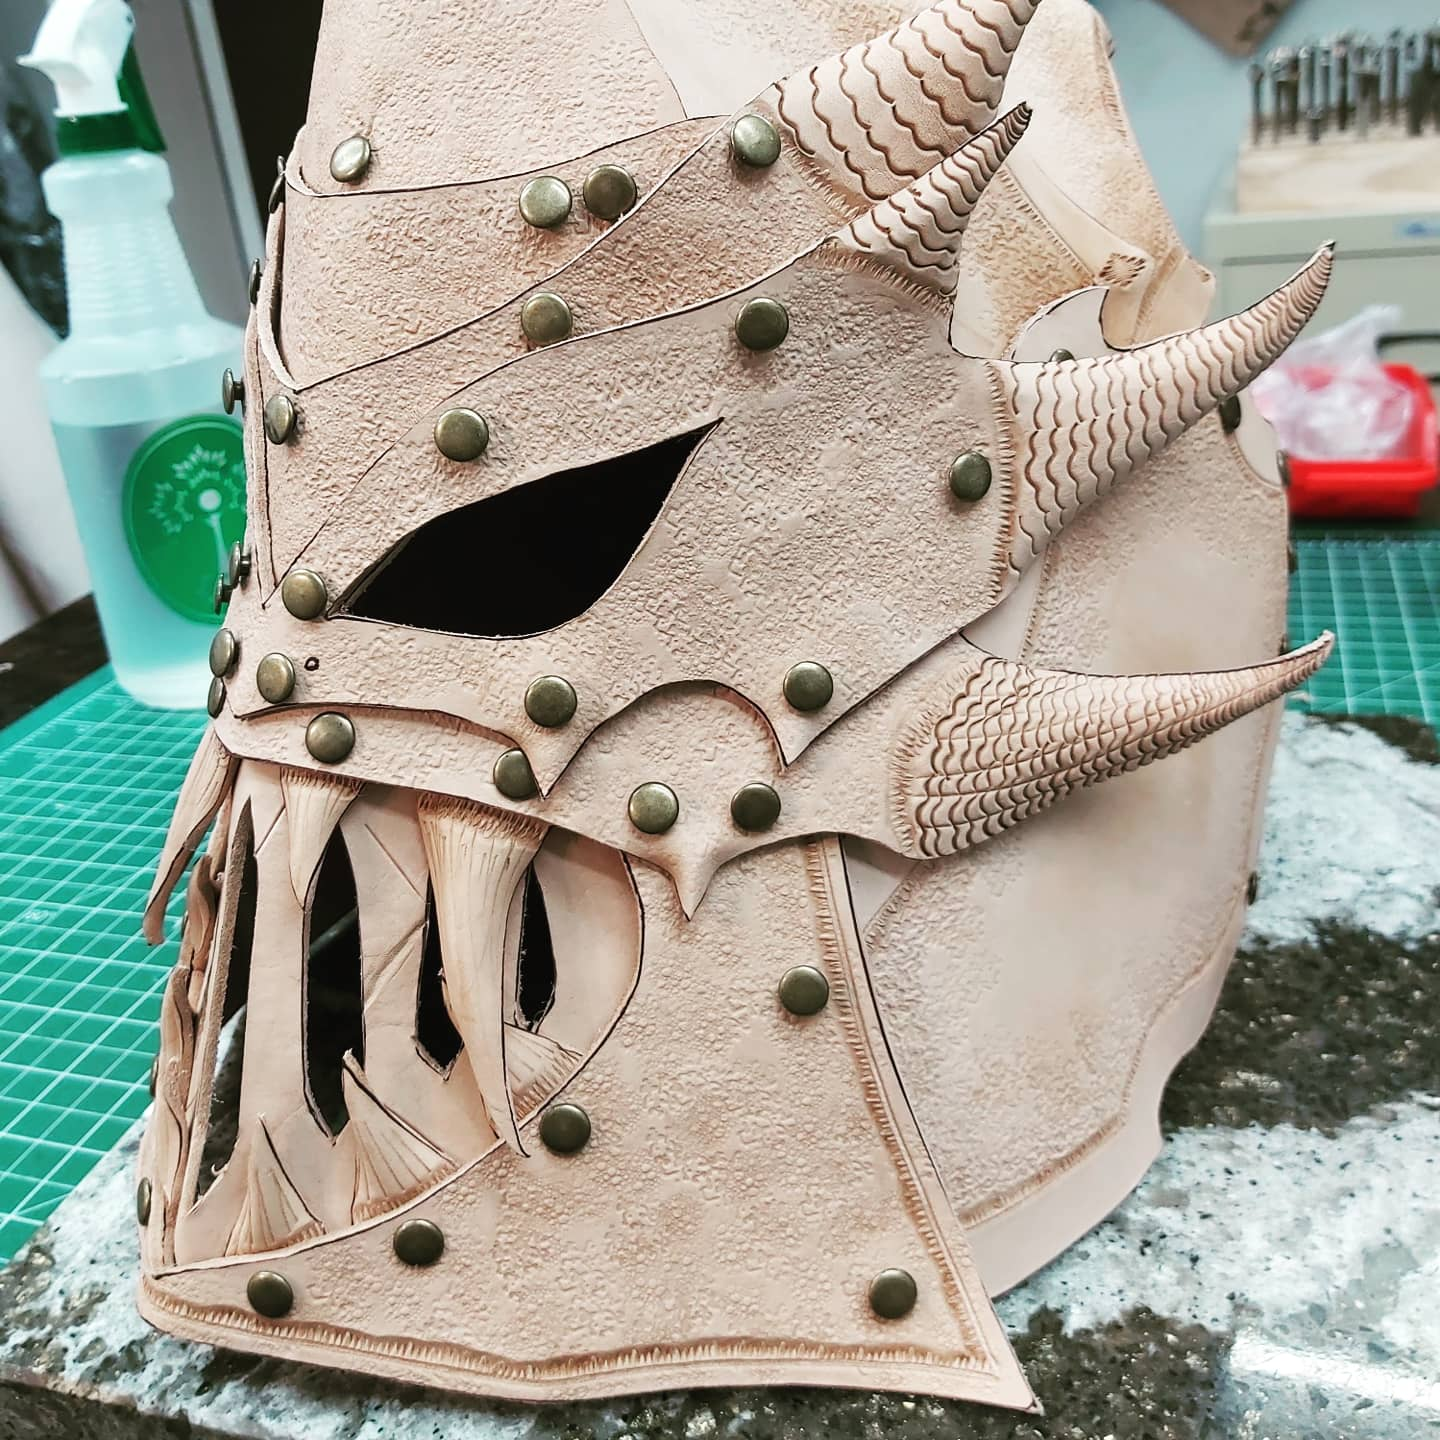 WIP Wednesday: Larp Gear, Masks & a Quiver!